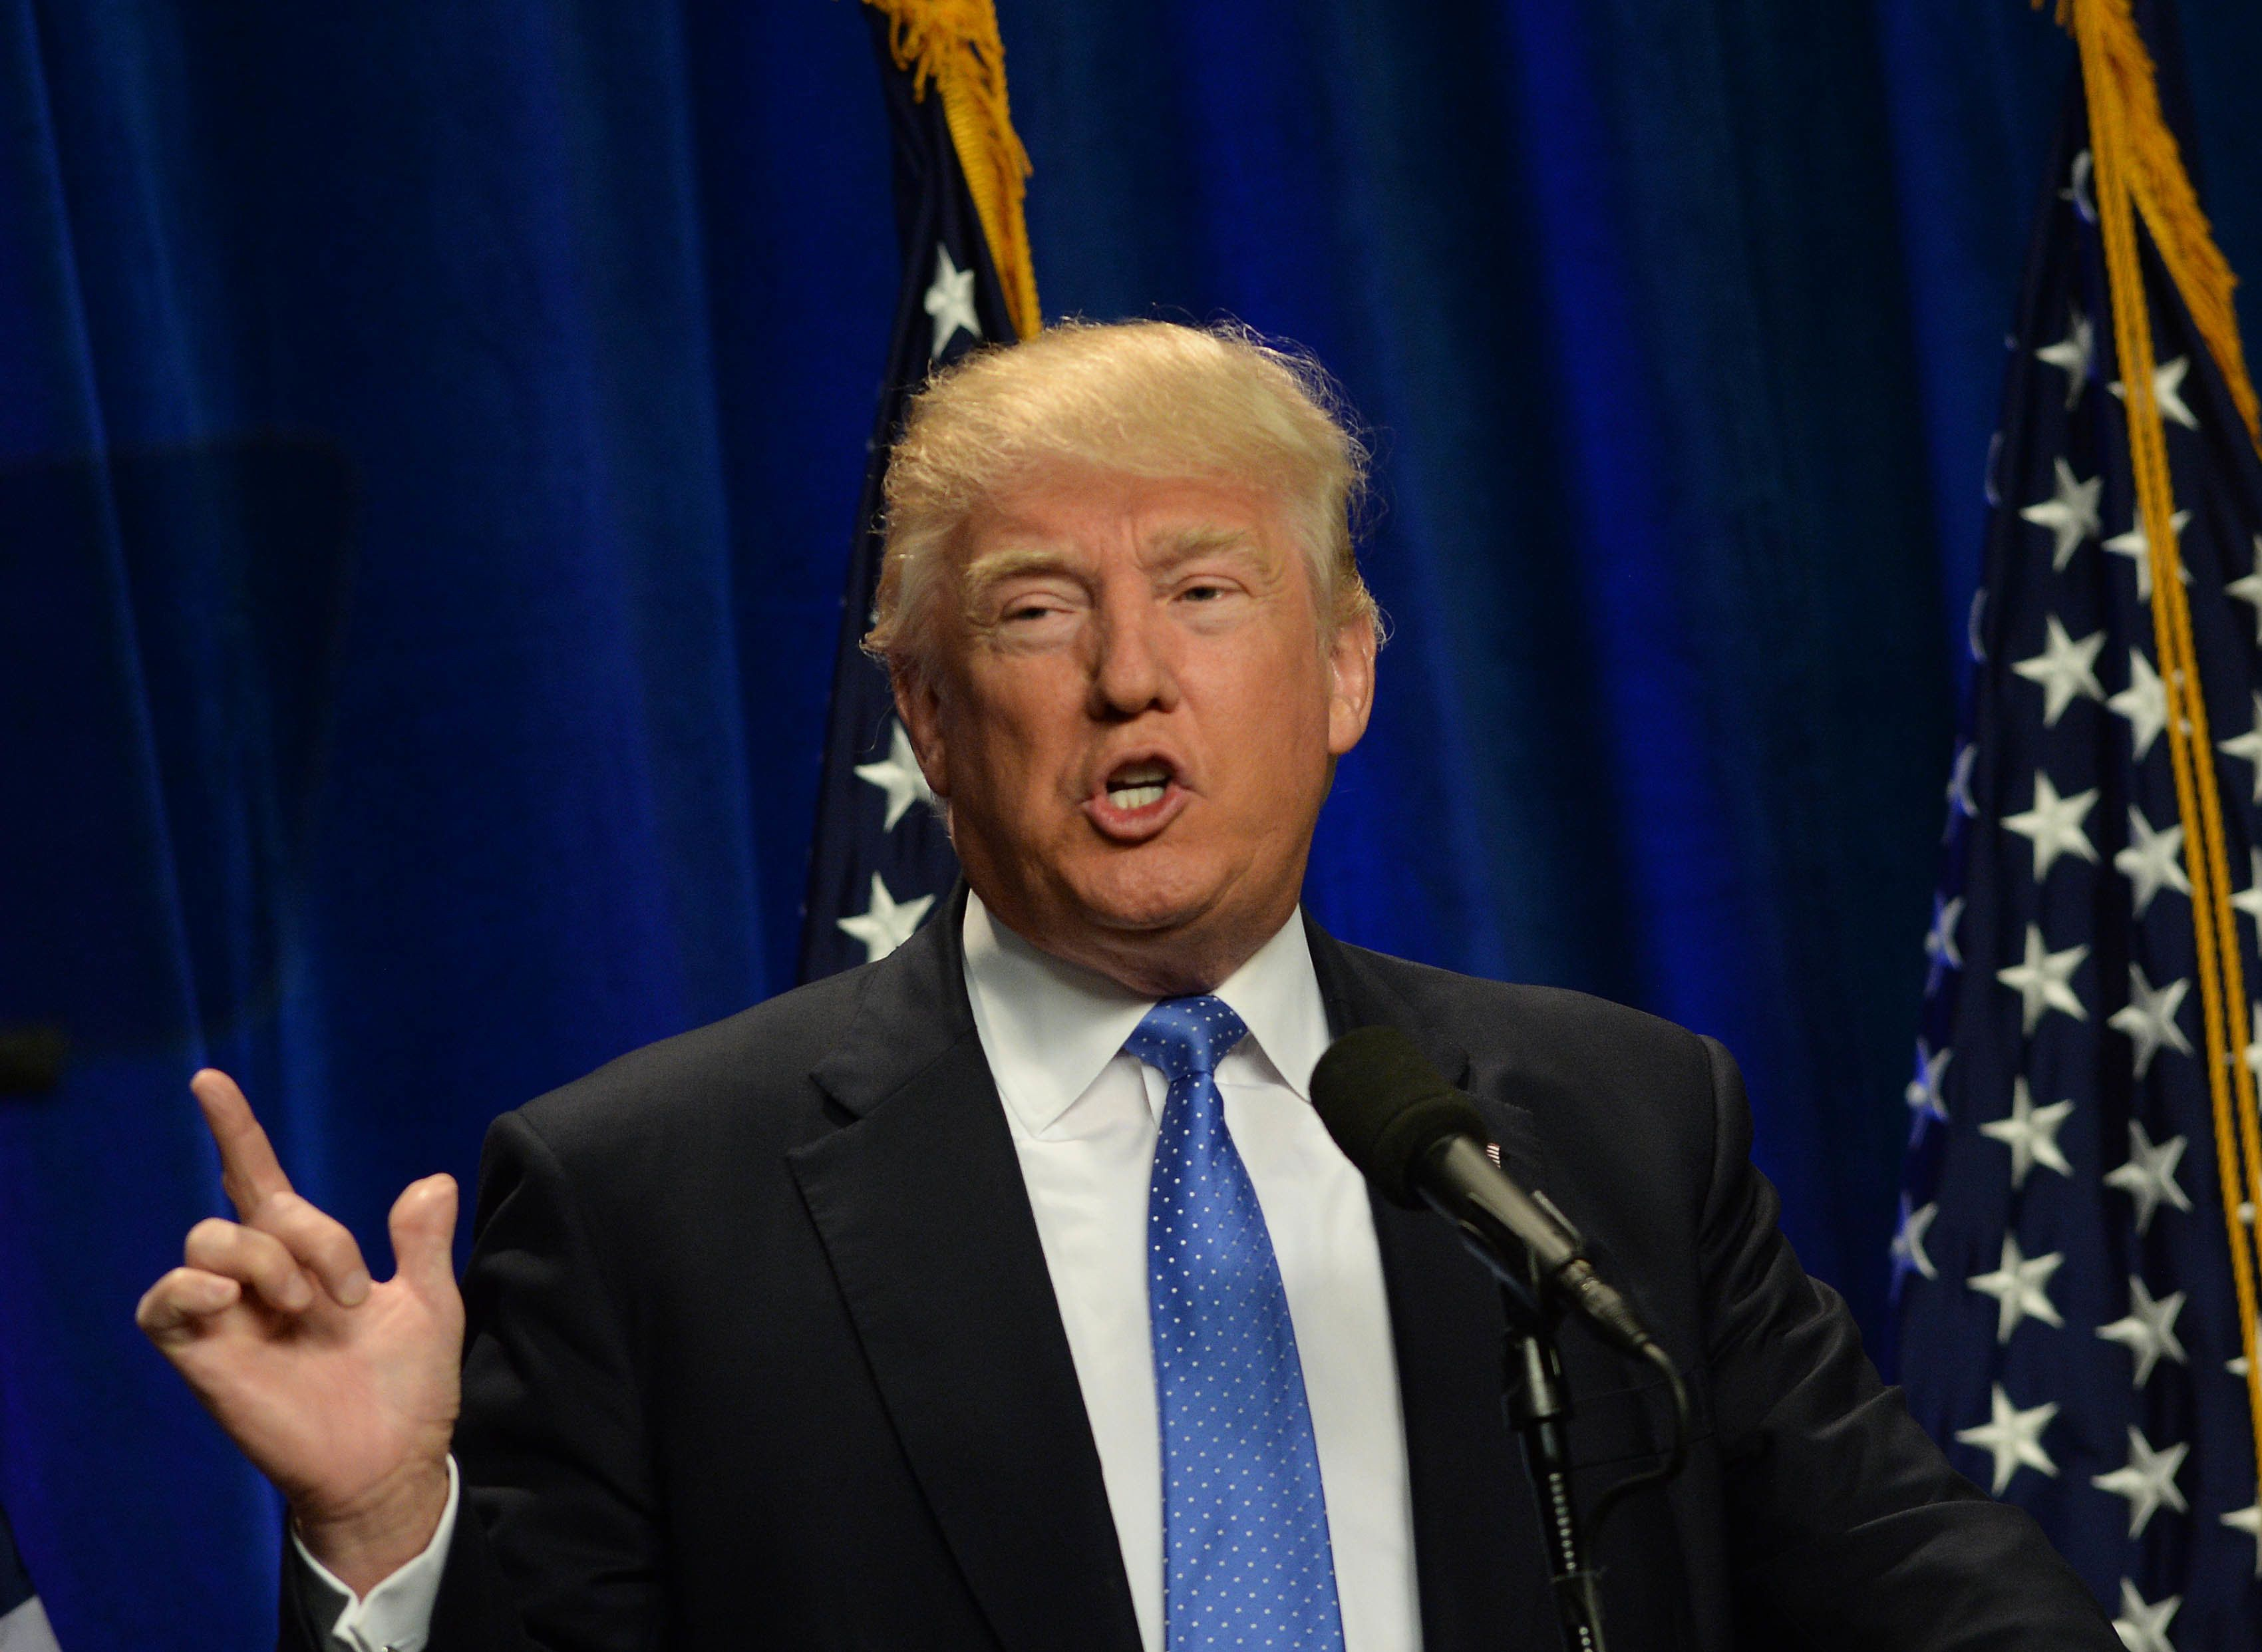 MANCHESTER, NH - JUNE 13: Republican Presidential candidate Donald Trump speaks at Saint Anselm College June 13, 2016 in Manchester, New Hampshire. Trump commented on the shooting in Orlando, condemning the violence he called radical Islam. (Photo by Darren McCollester/Getty Images)